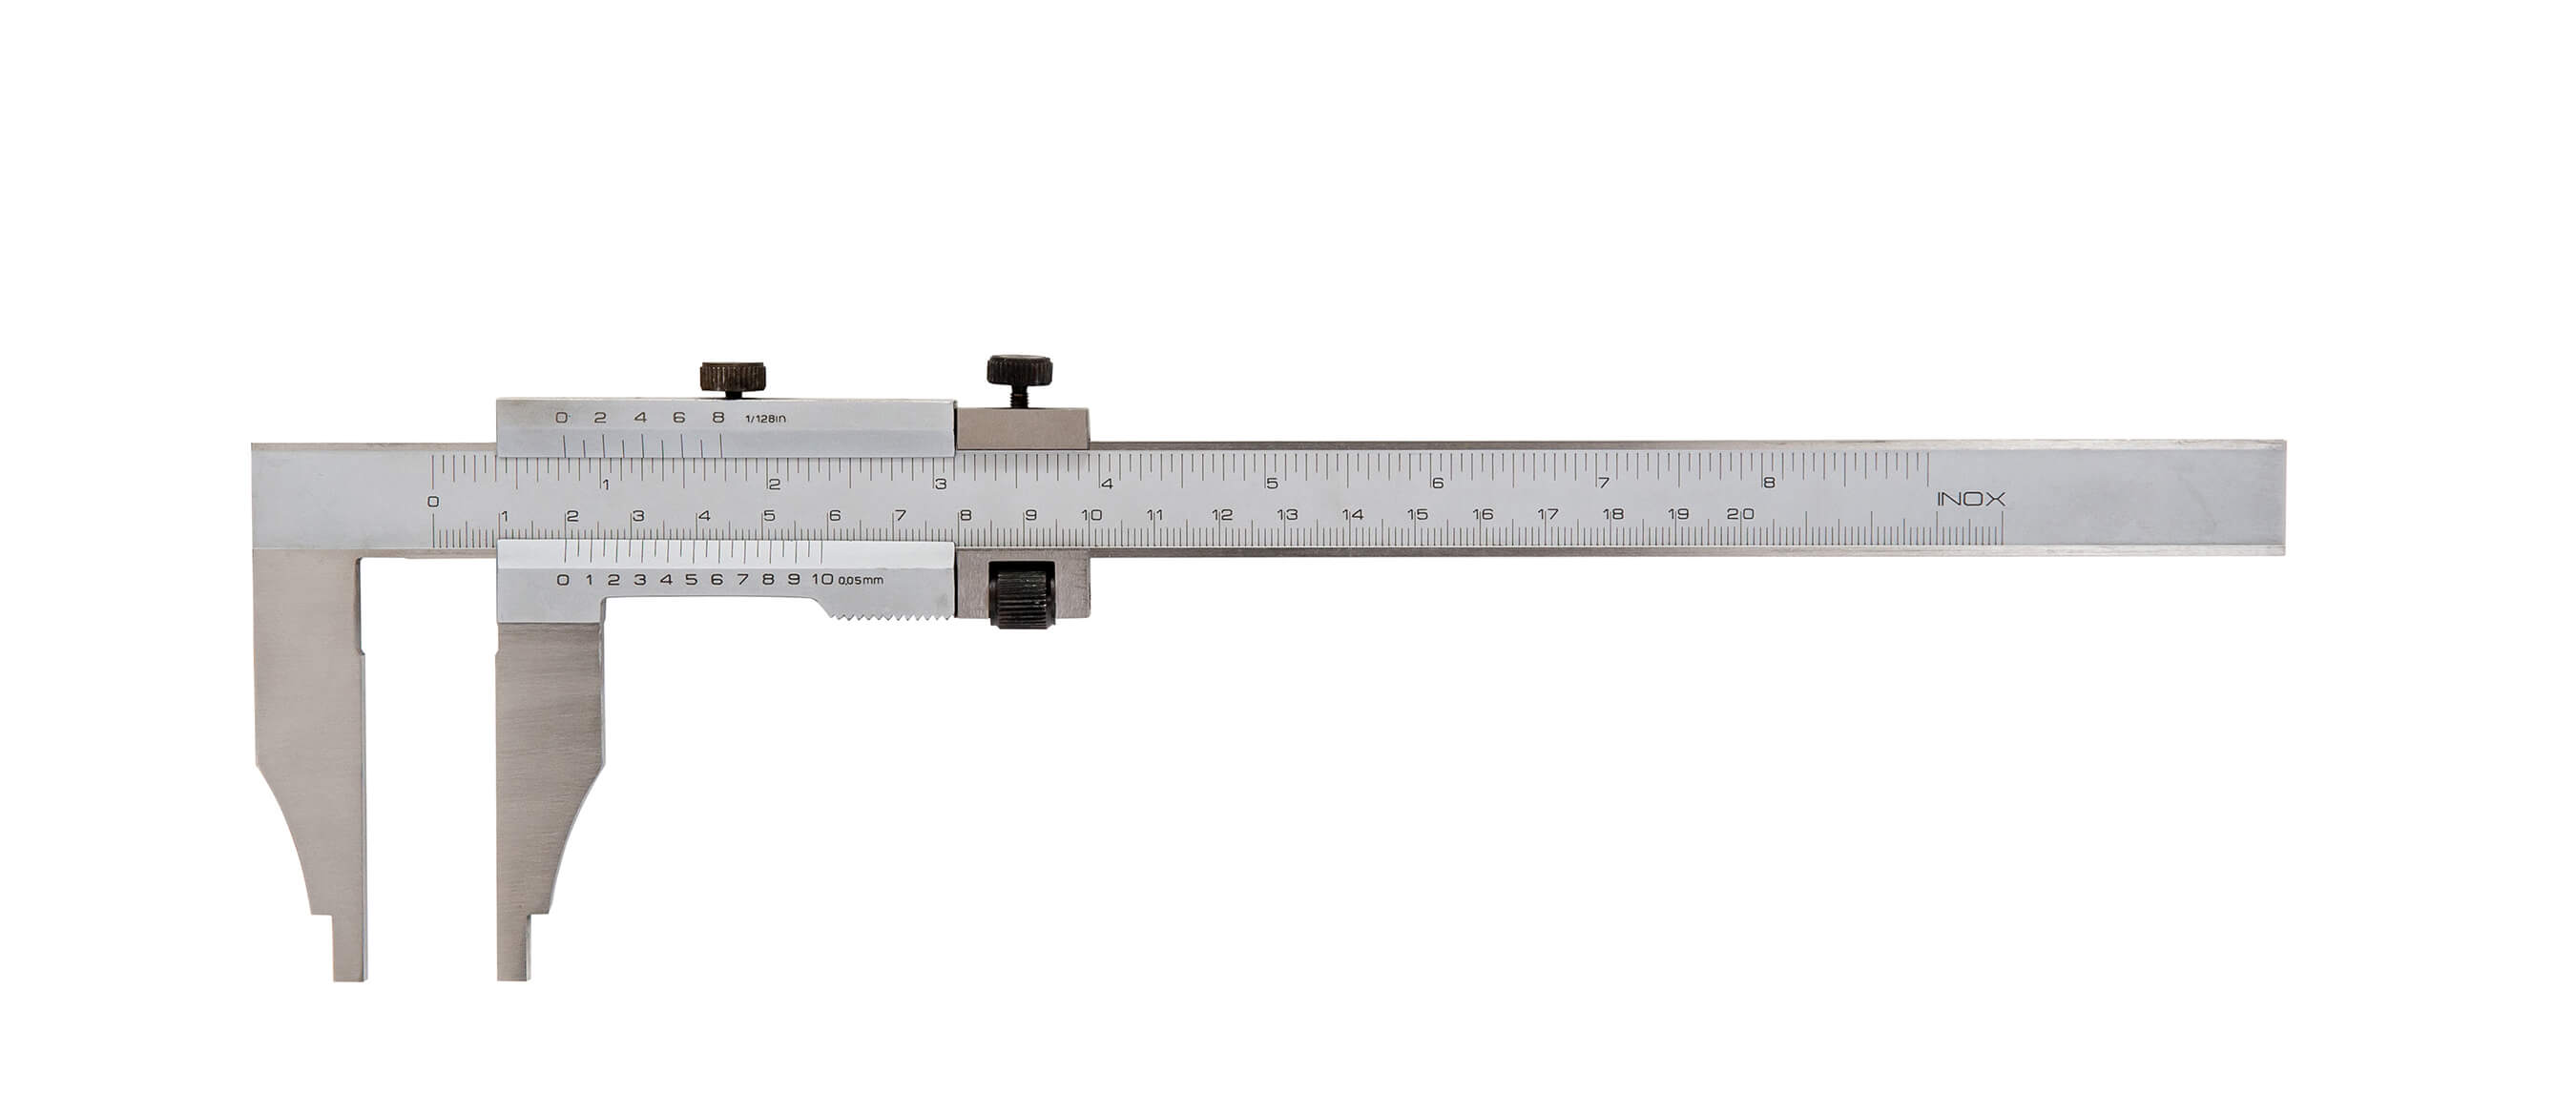 vernier caliper essay The vernier caliper and the micrometer are both devices used to measure the length of an object the measurement is in between the jaws of the vernier caliper 2 the.